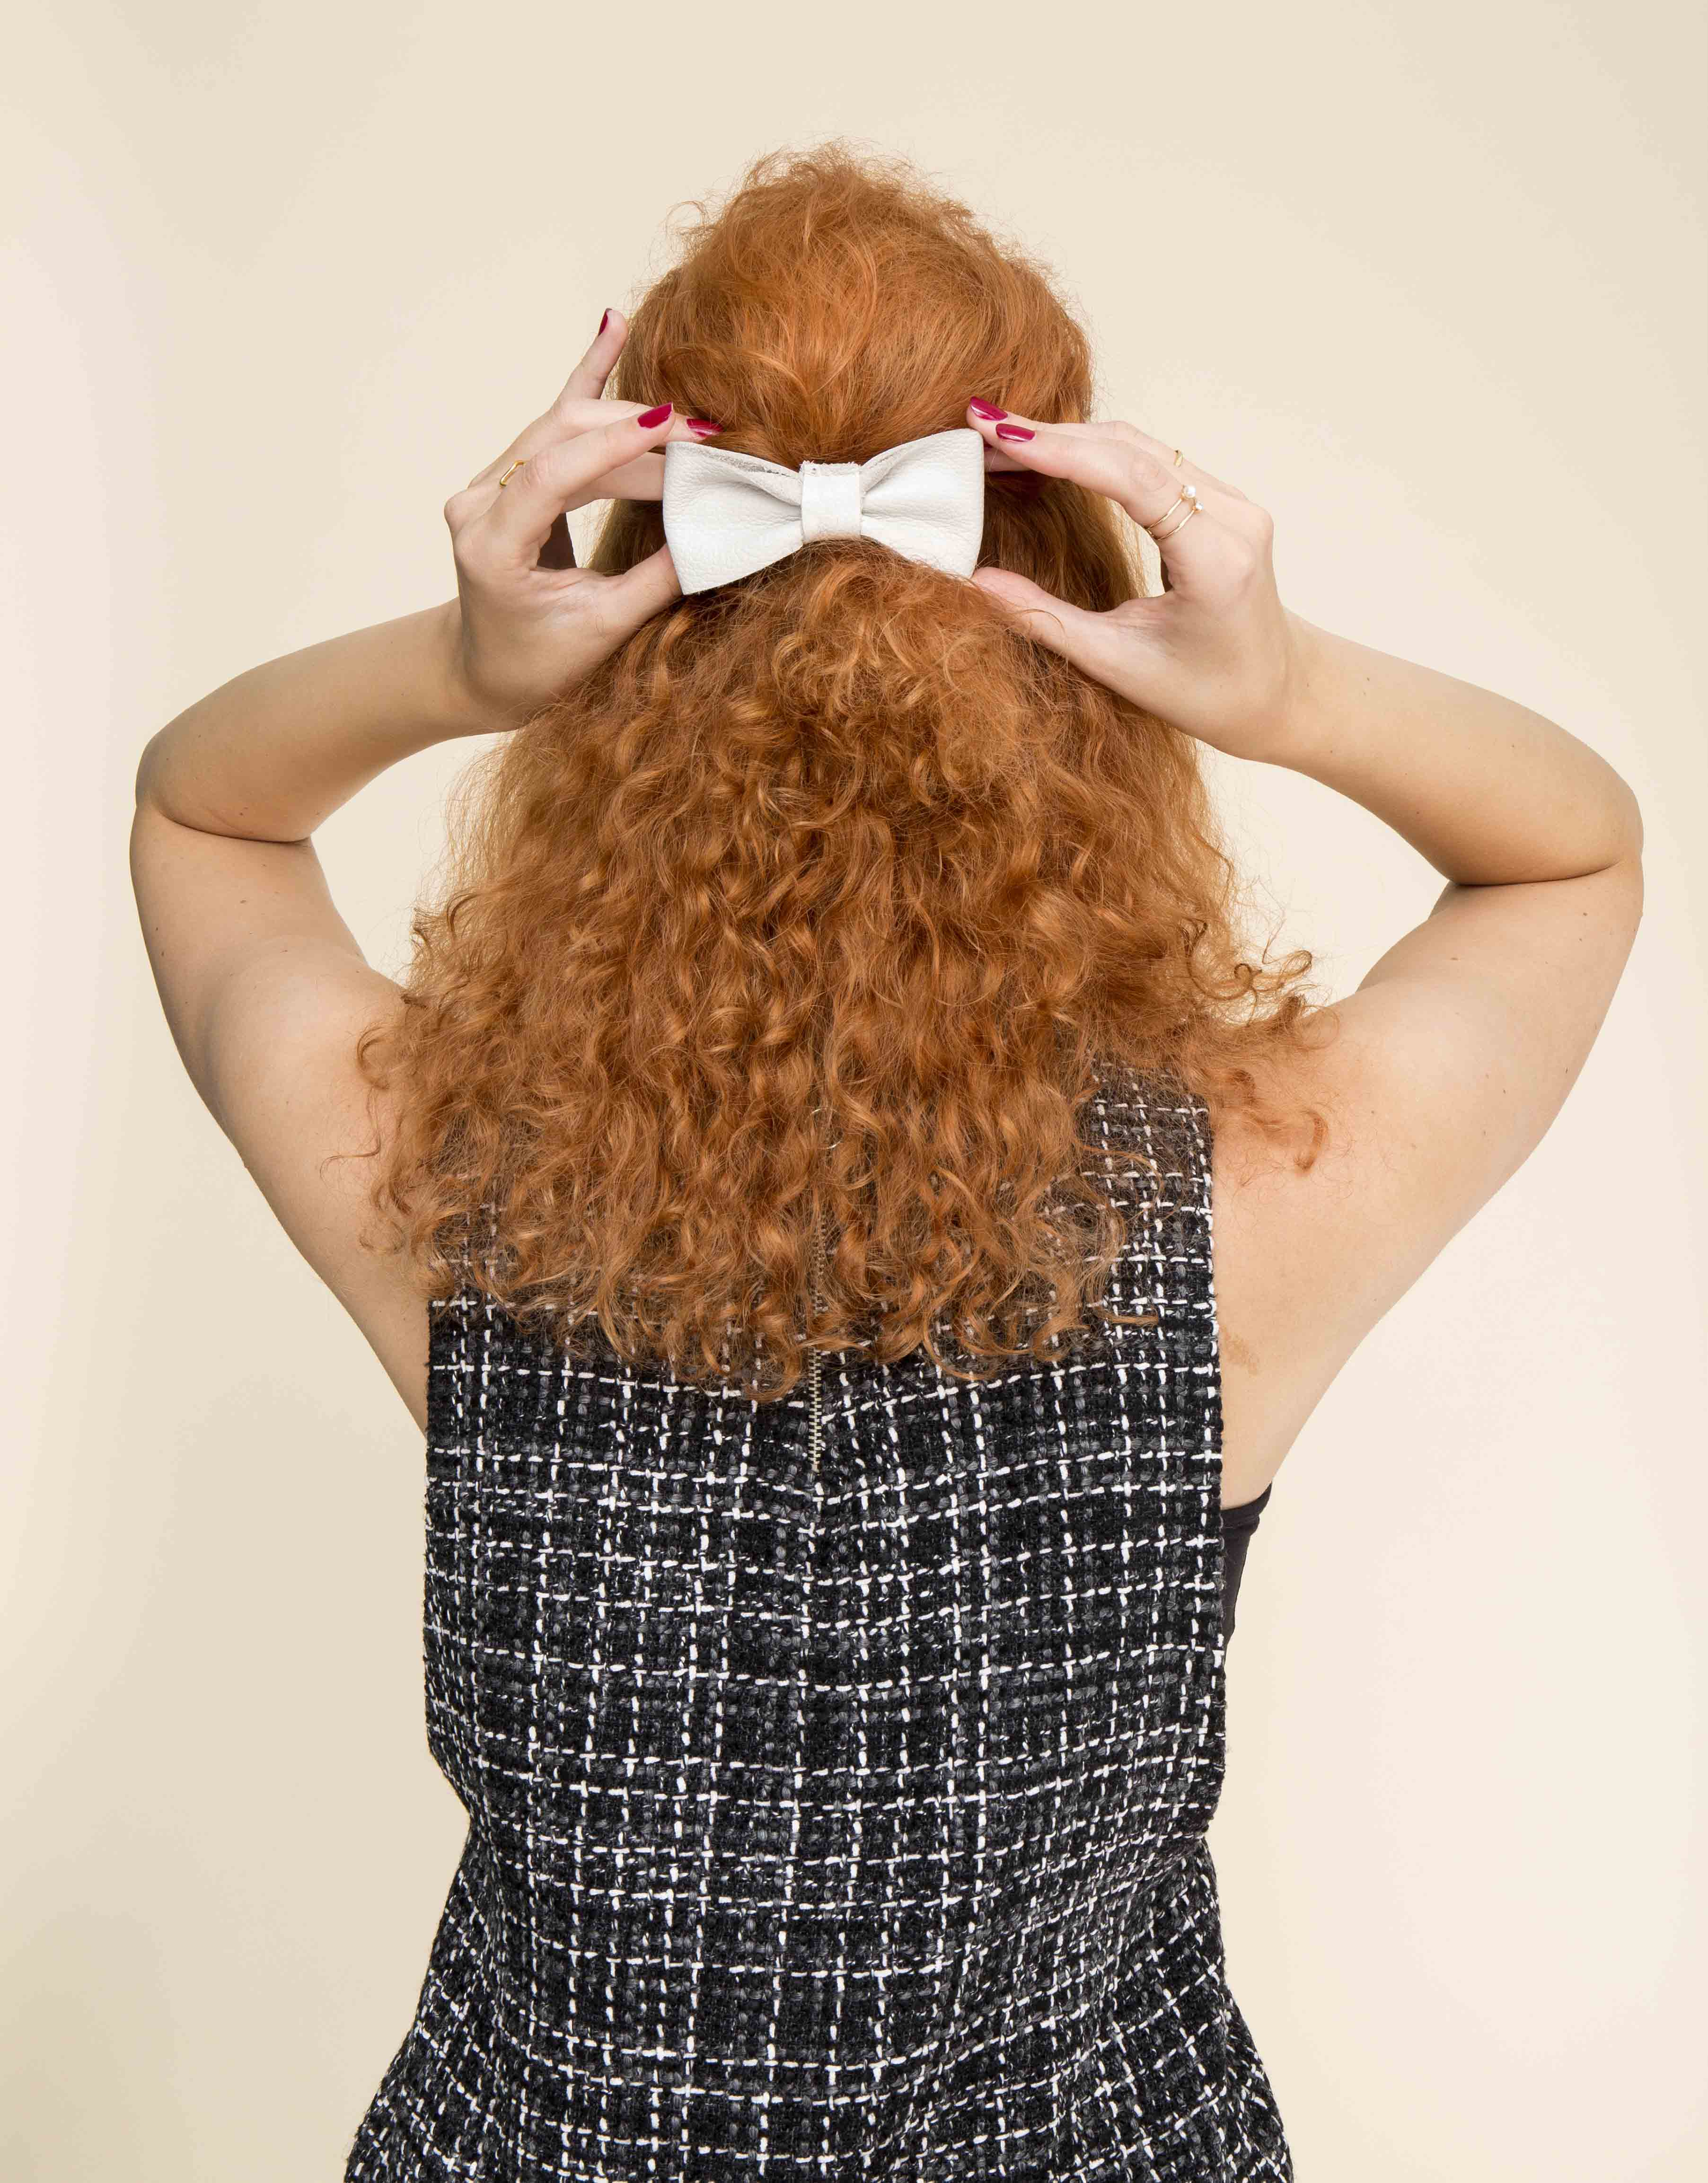 Curly wedding hair: Back view of a woman with ginger curly hair worn in a half up hairstyle with a white bow accessory attached